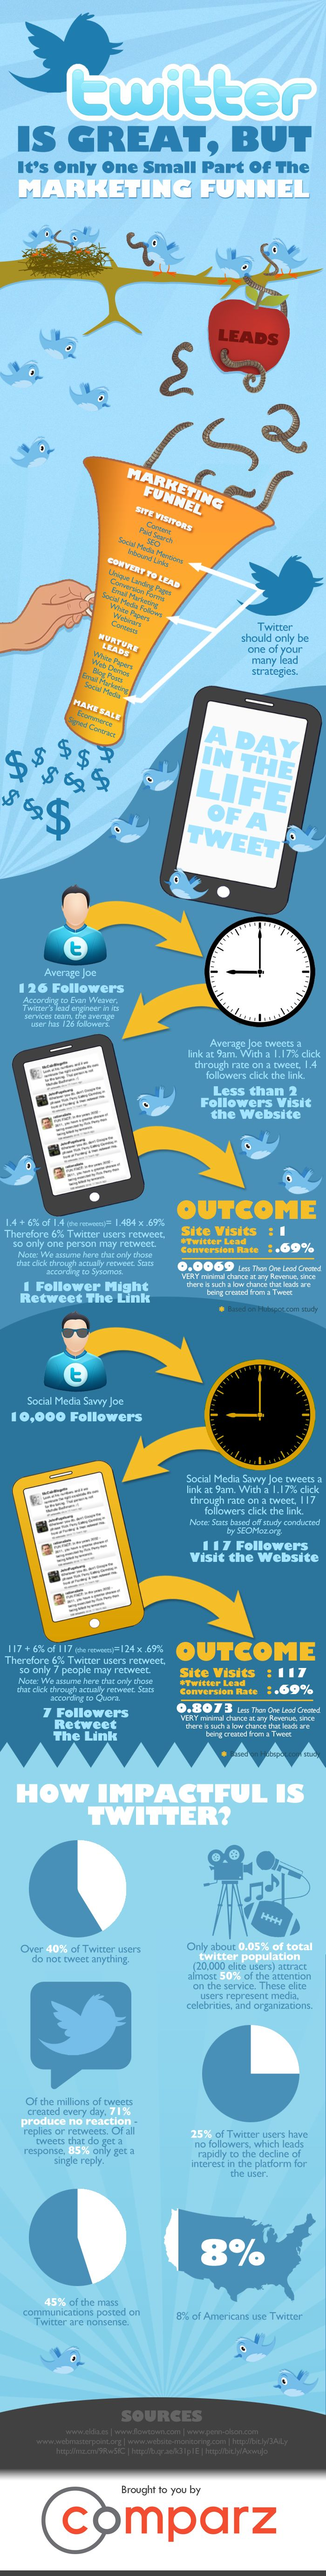 Infographic--Twitter Should Only be a Small Piece of Your Marketing Efforts